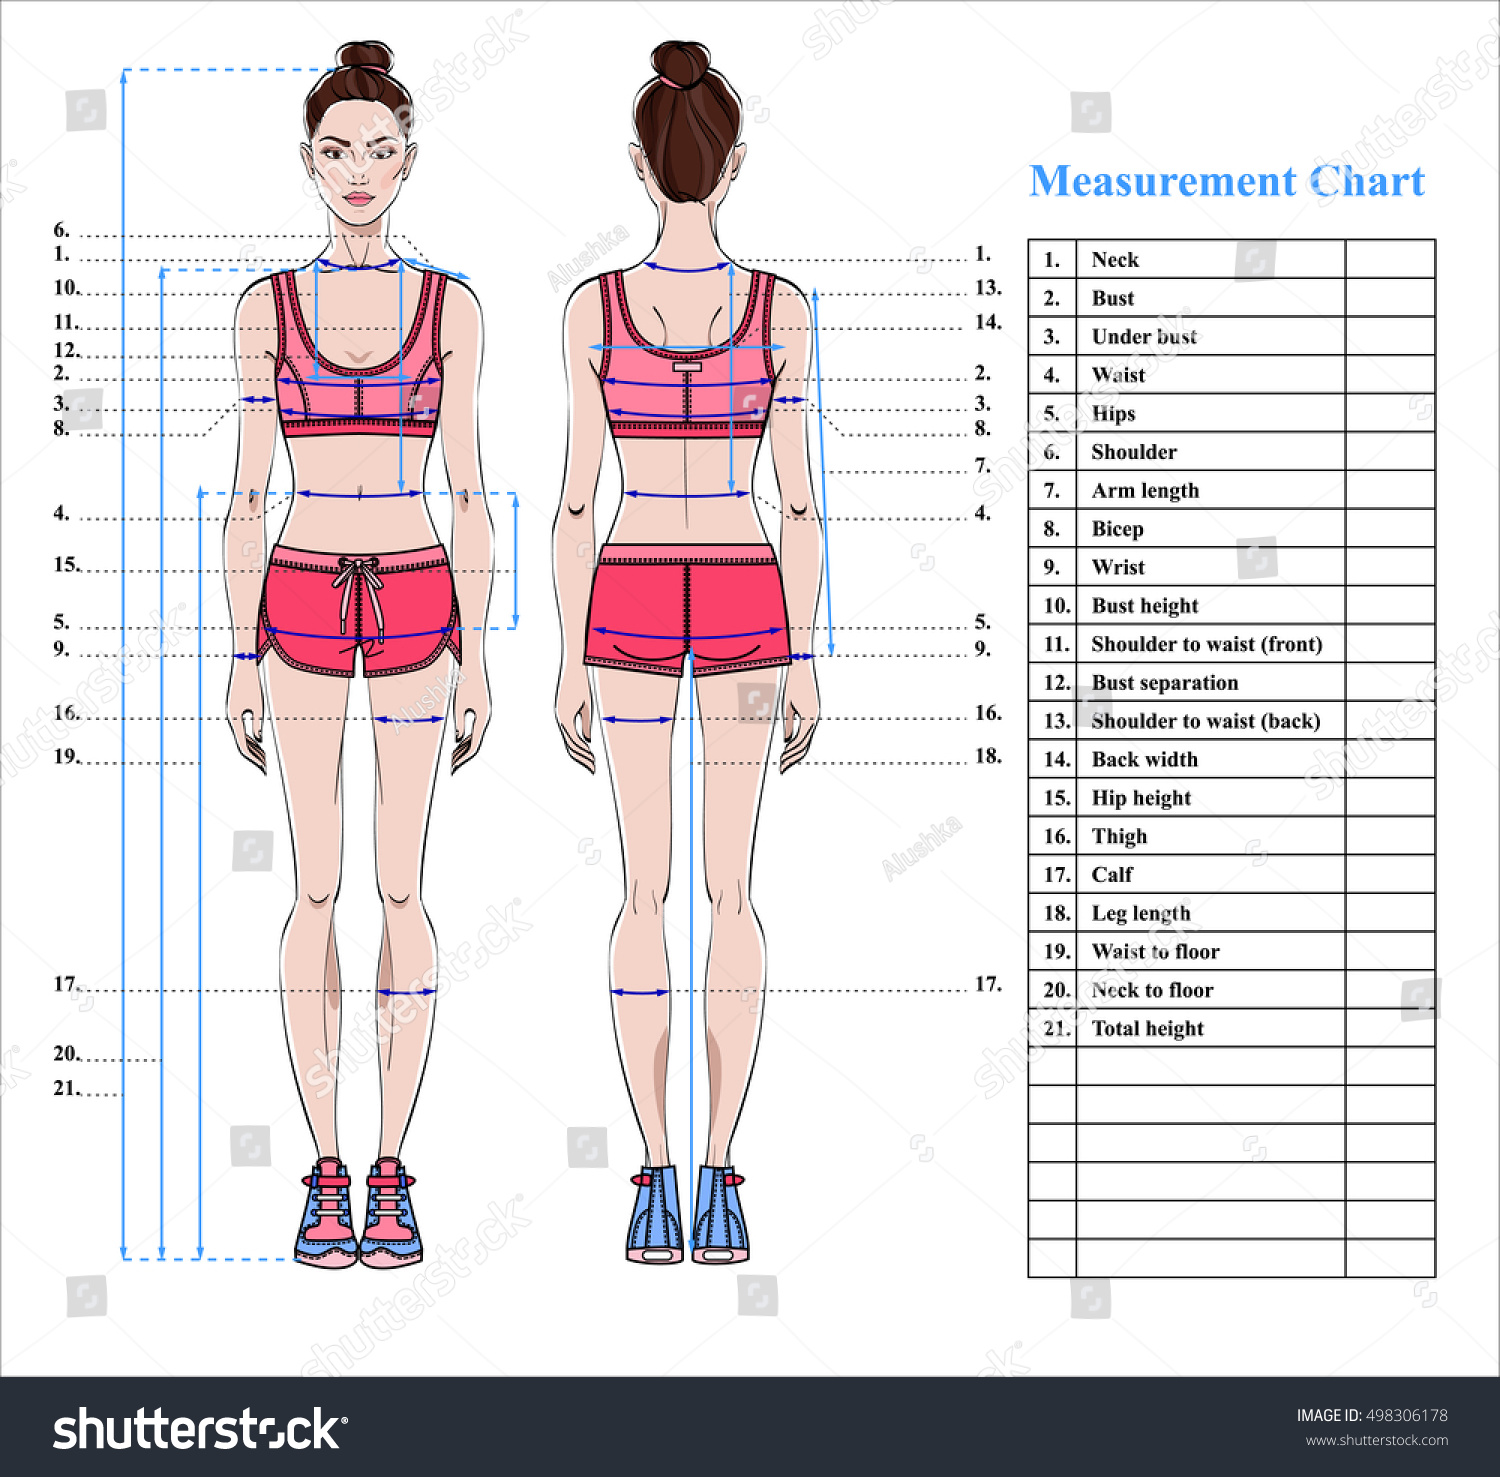 fitness measurement chart